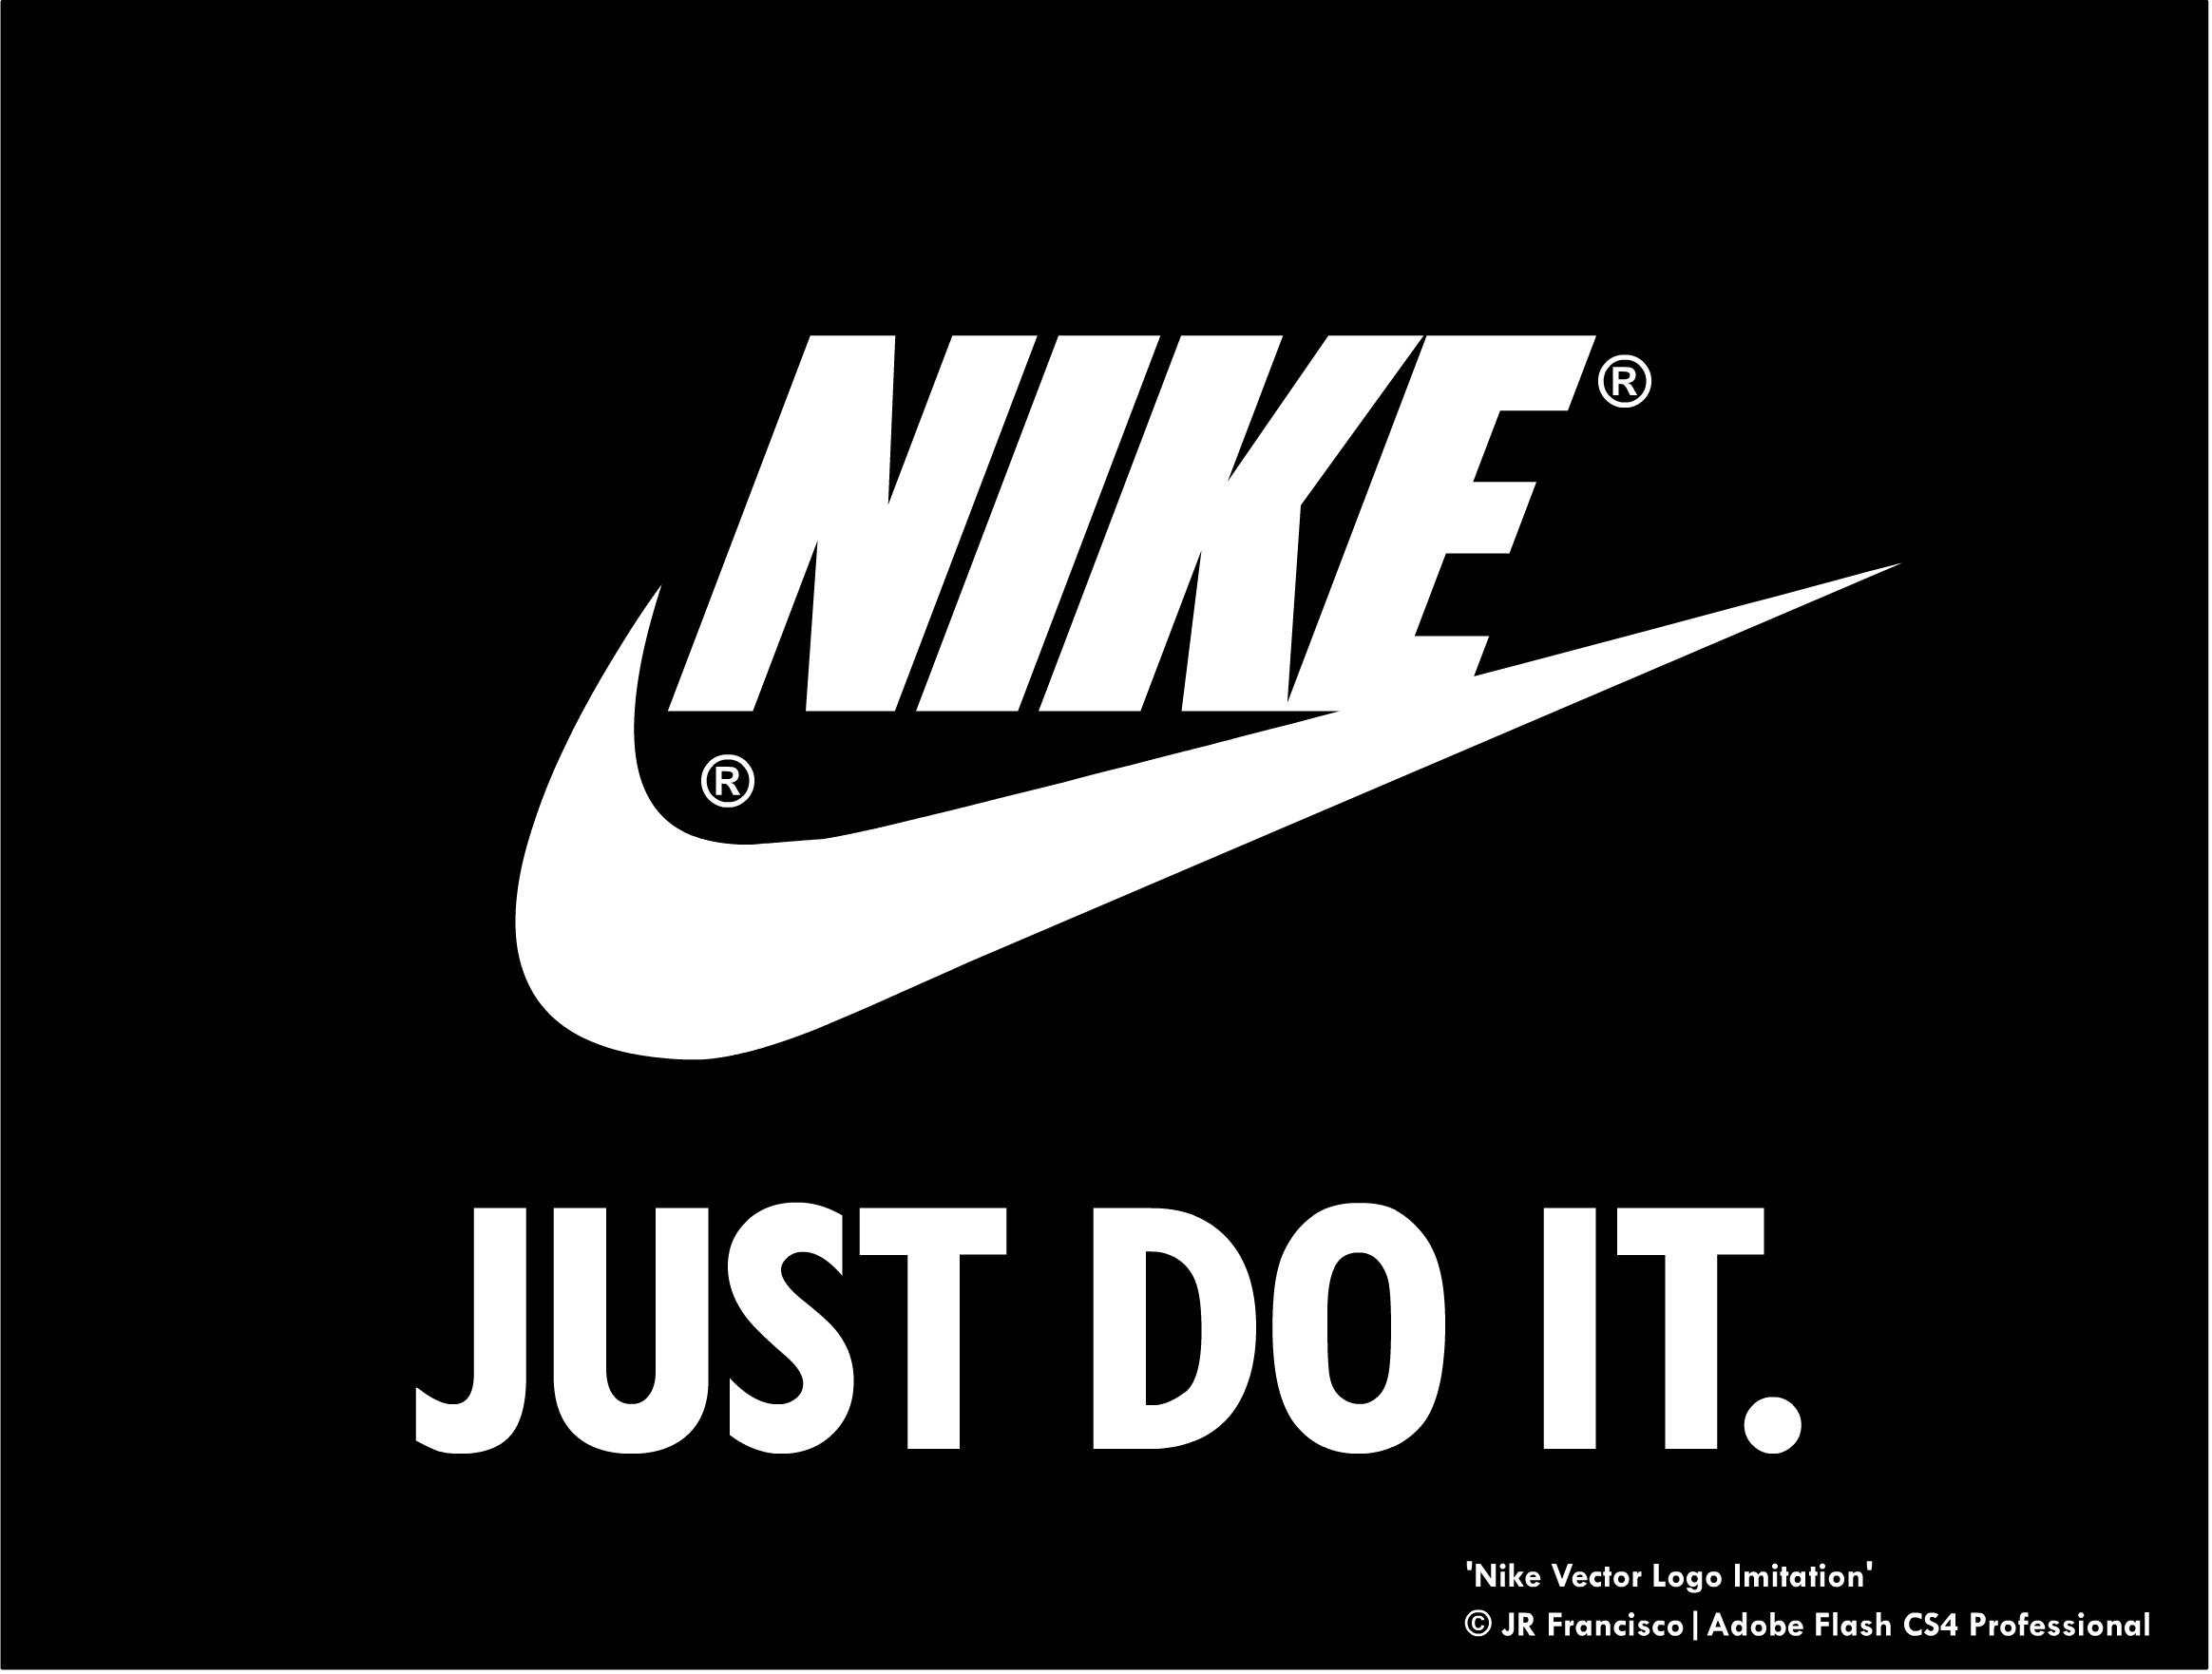 2328x1762 Nike Just Do it wallpapers Wallpapers) – Wallpapers